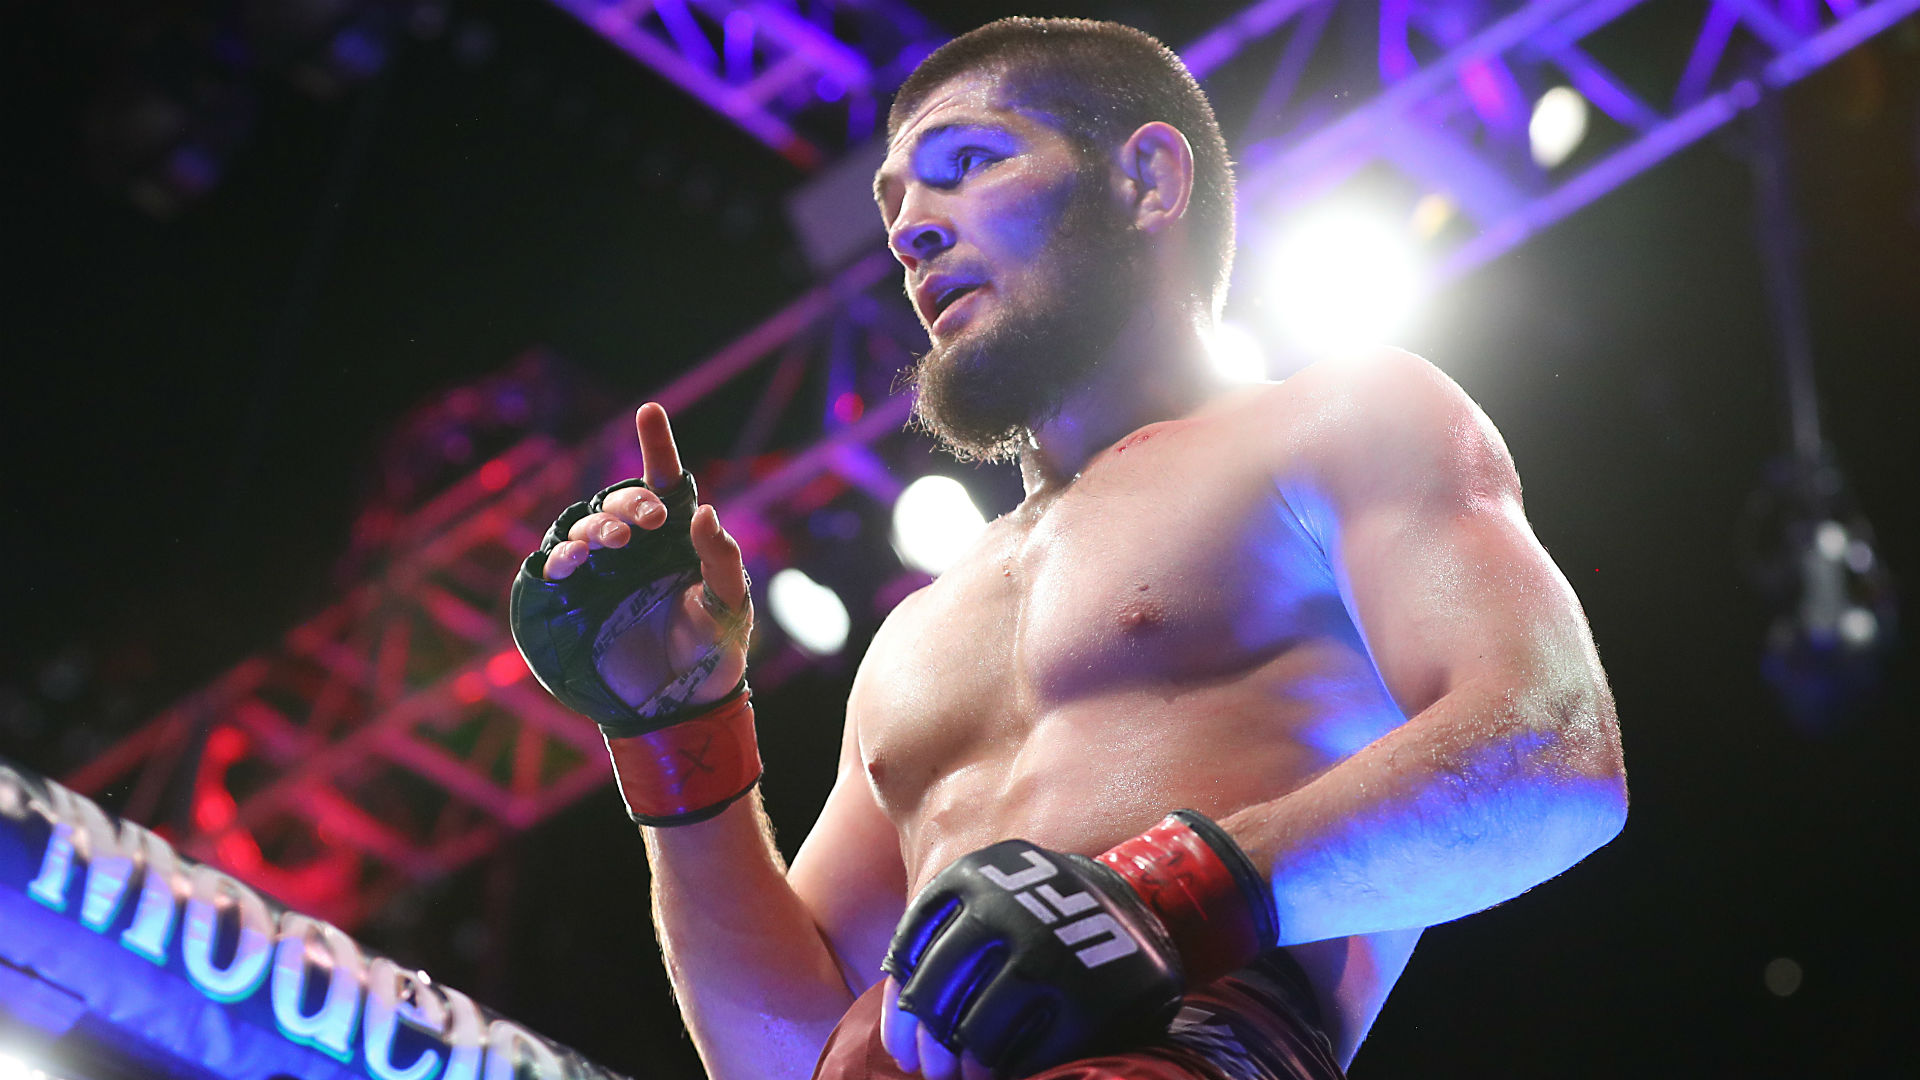 UFC 242: Is Khabib Nurmagomedov really as good as we think he is?